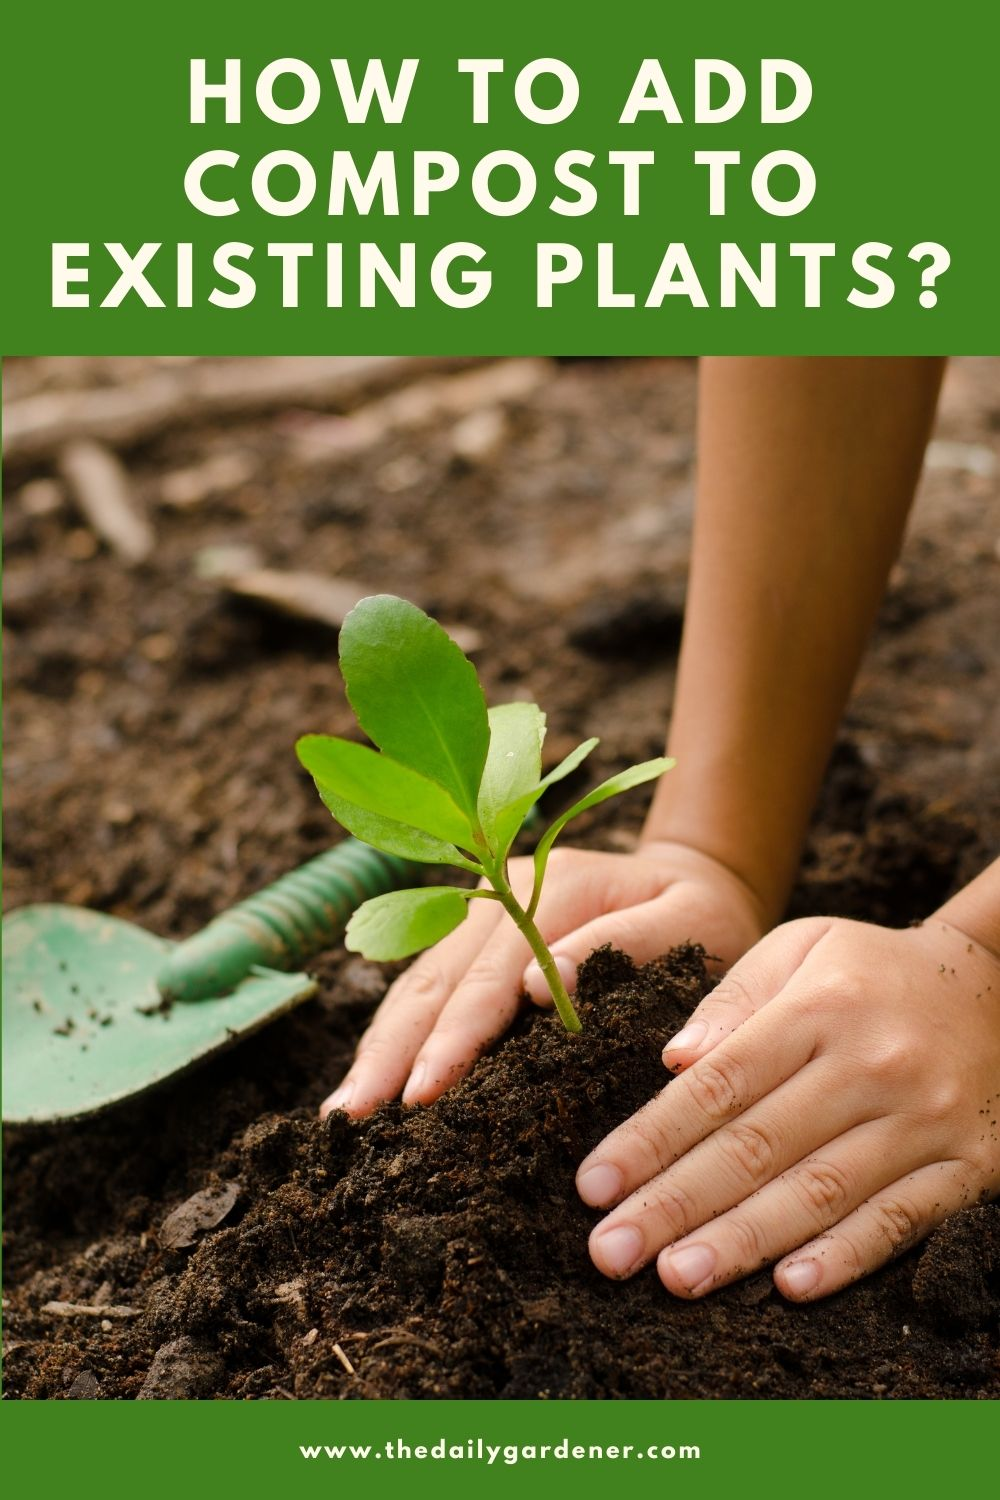 How to Add Compost to Existing Plants 2